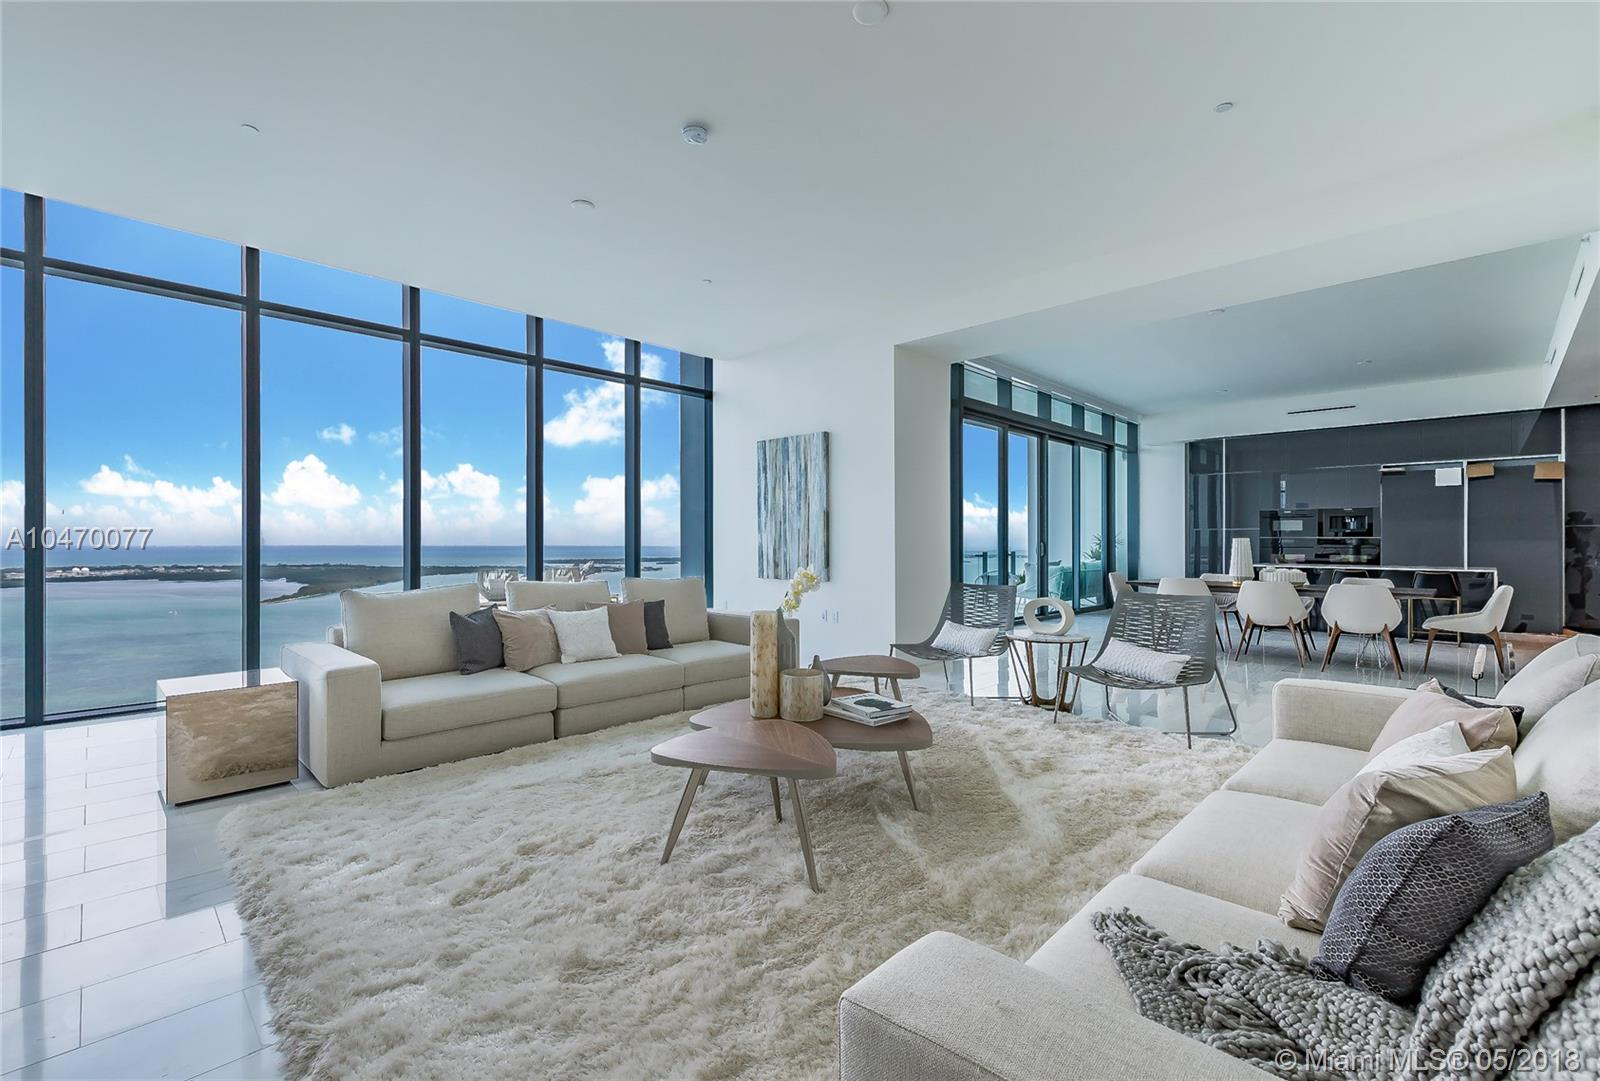 "Stunning Designer appointed turnkey Lower Penthouse residence with incredible unobstructed  views of Biscayne Bay, Miami skyline, and the Ocean - with East, West, North & South views.  Fully furnished & ready to show to your most discriminating Buyers,  Featuring a spectacular Master Suite, with built-in Italian closets & extra tall floor to ceiling windows.  Marble flooring throughout, 7-foot Italian entry doors, and Poliform kitchen cabinets.  Echo Brickell is a state of the art ""Smart"" building, designed by Carlos Ott + Yoo, 4000 sq ft fitness center, Infinity edge pools. Enjoy complimentary daily breakfast poolside, in-house chauffeur services, or the on call dog walkers.  Best Penthouse opportunity in all of Downtown Miami."